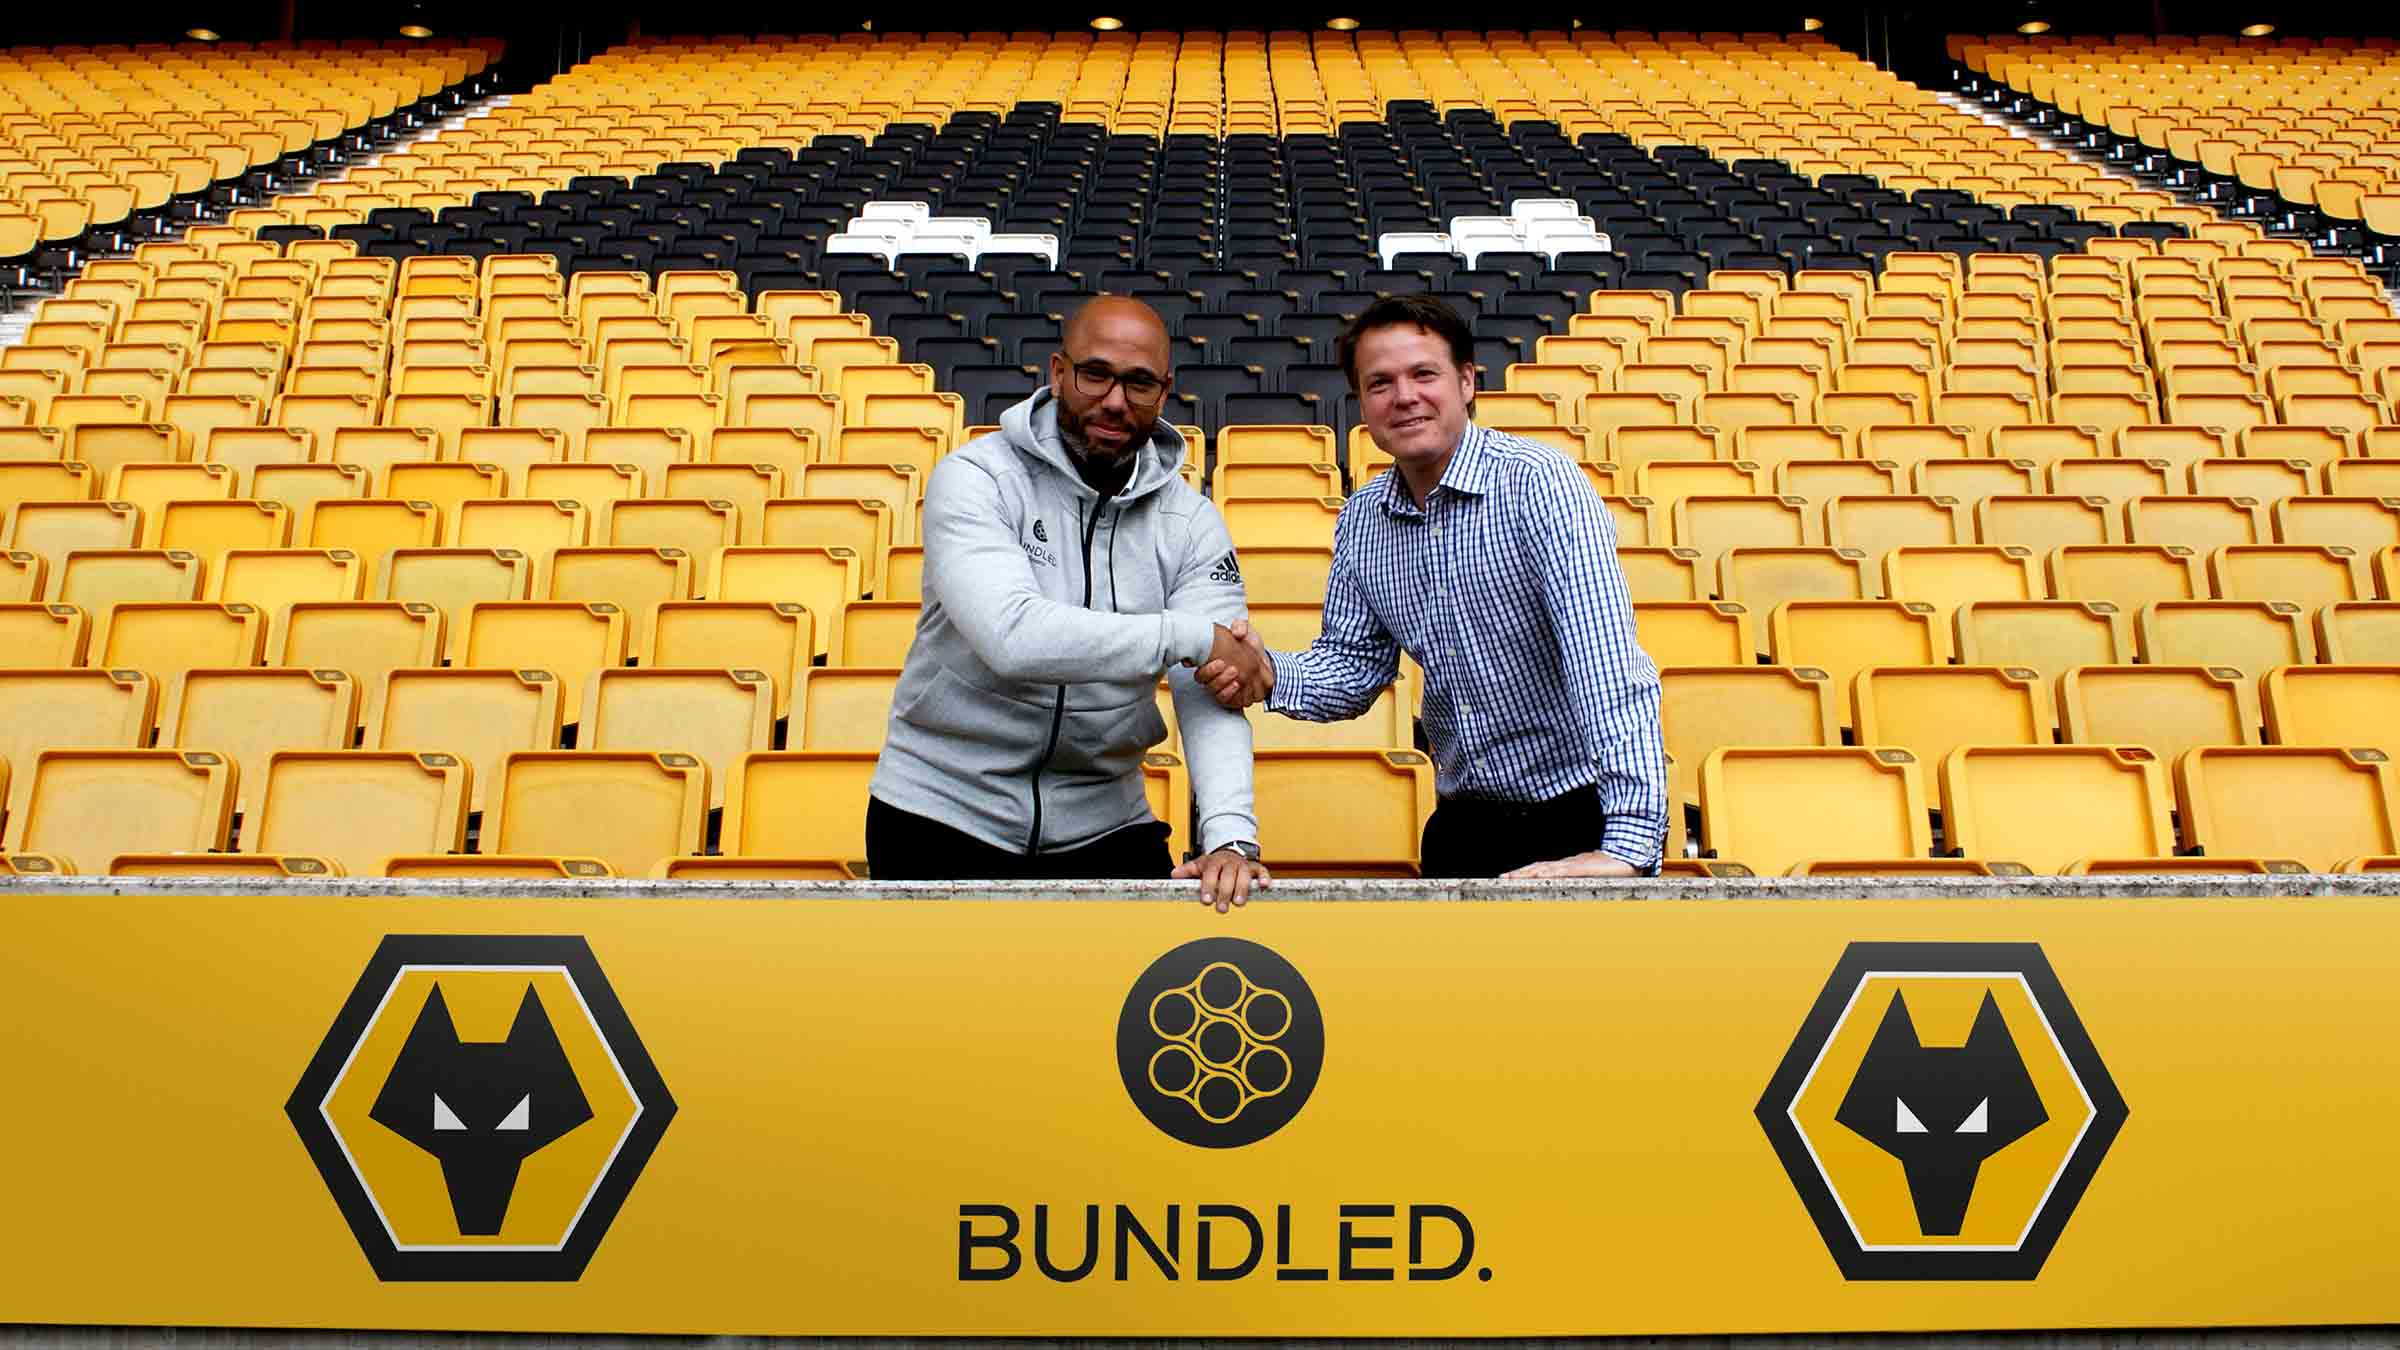 Bundled are delighted to announce a new partnership with Wolverhampton Wanderers FC